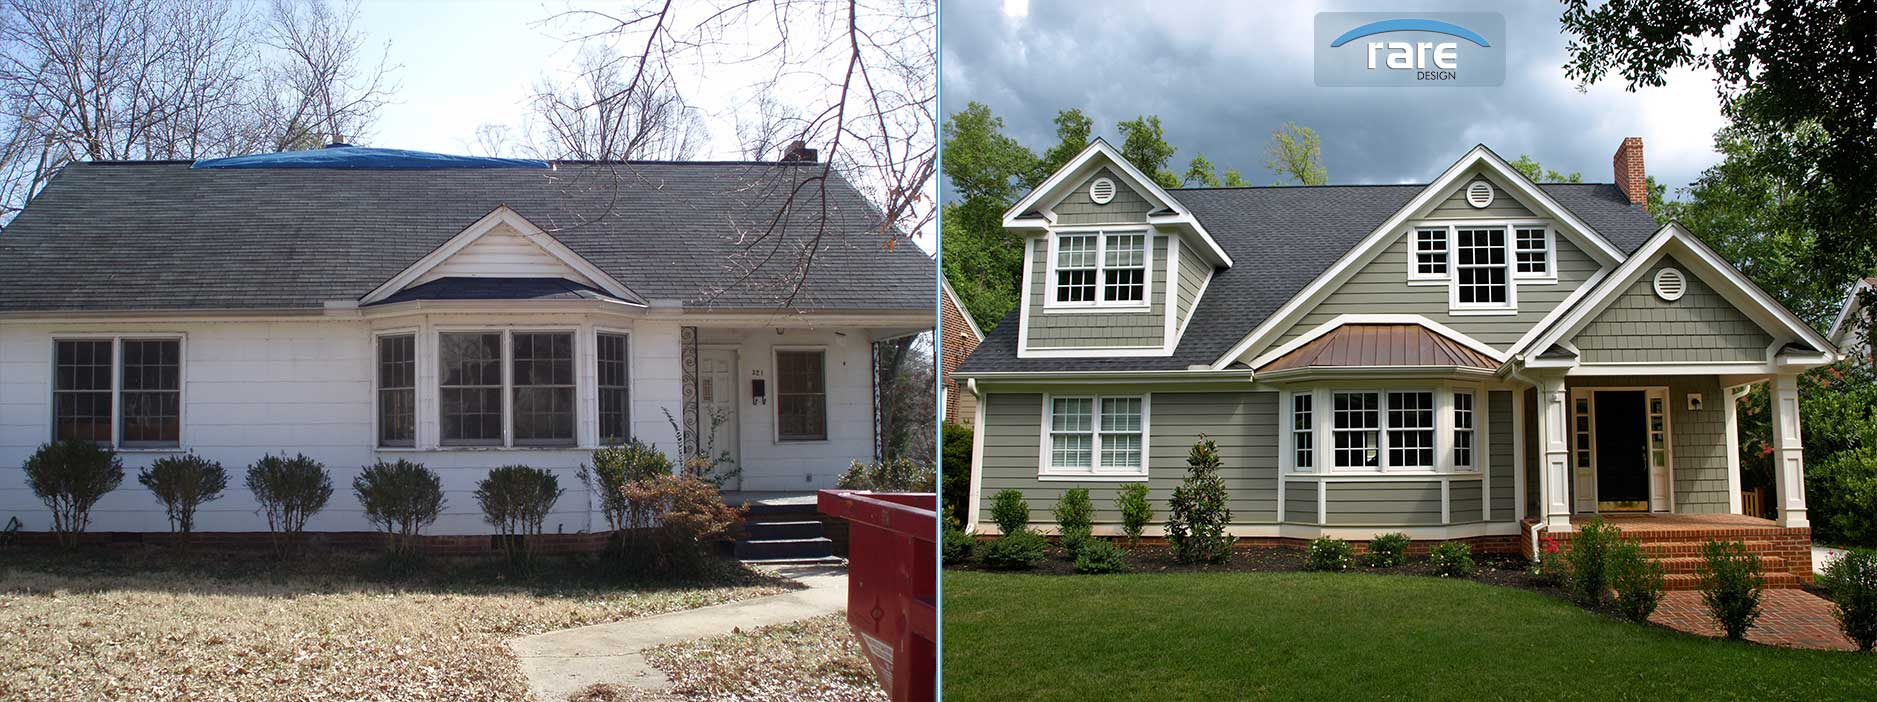 greenville home remodel rare design before and after kupersmith front elevation - Before And After Home Remodel